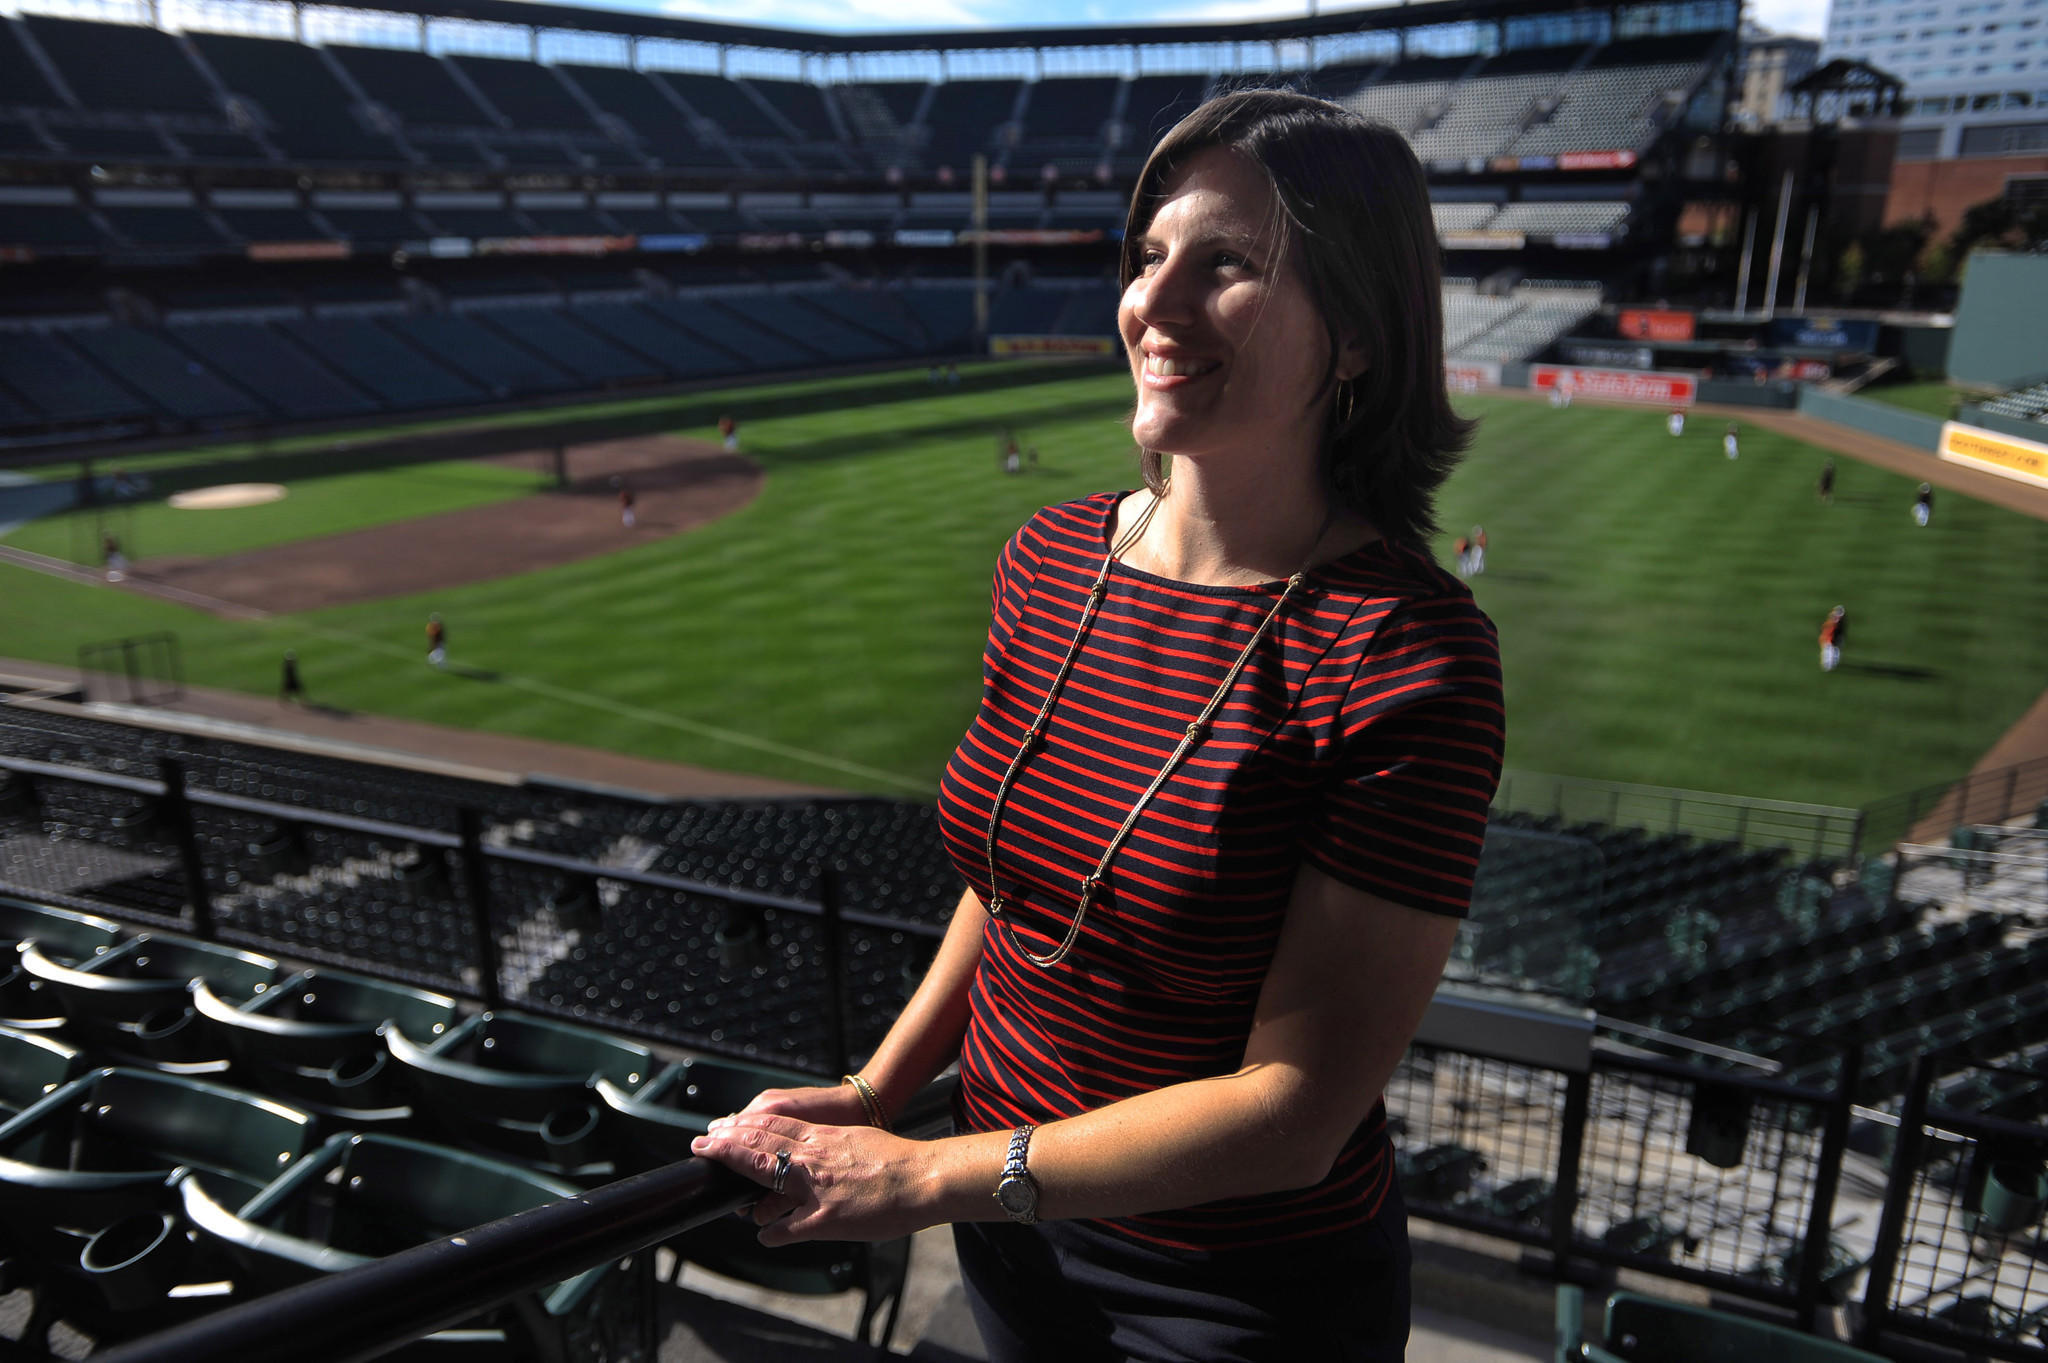 The Orioles will honor Monica Pence Barlow before the season-opener against Boston on March 31, 2014. The Orioles director of public relations died earlier this year after a battle with lung cancer. She was 36.